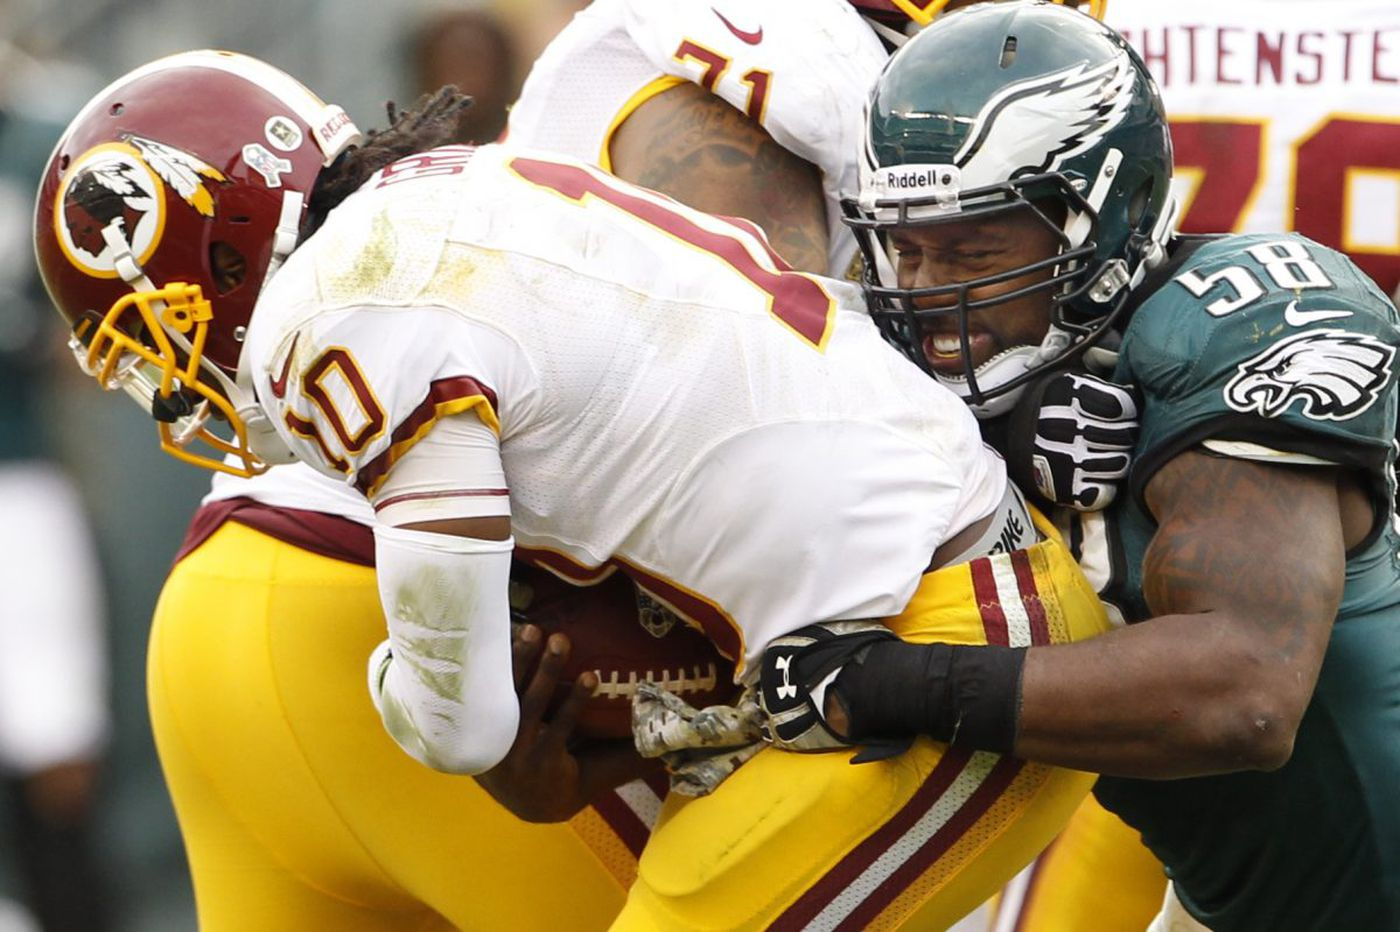 Eagles' Trent Cole retires from NFL, but not from farming